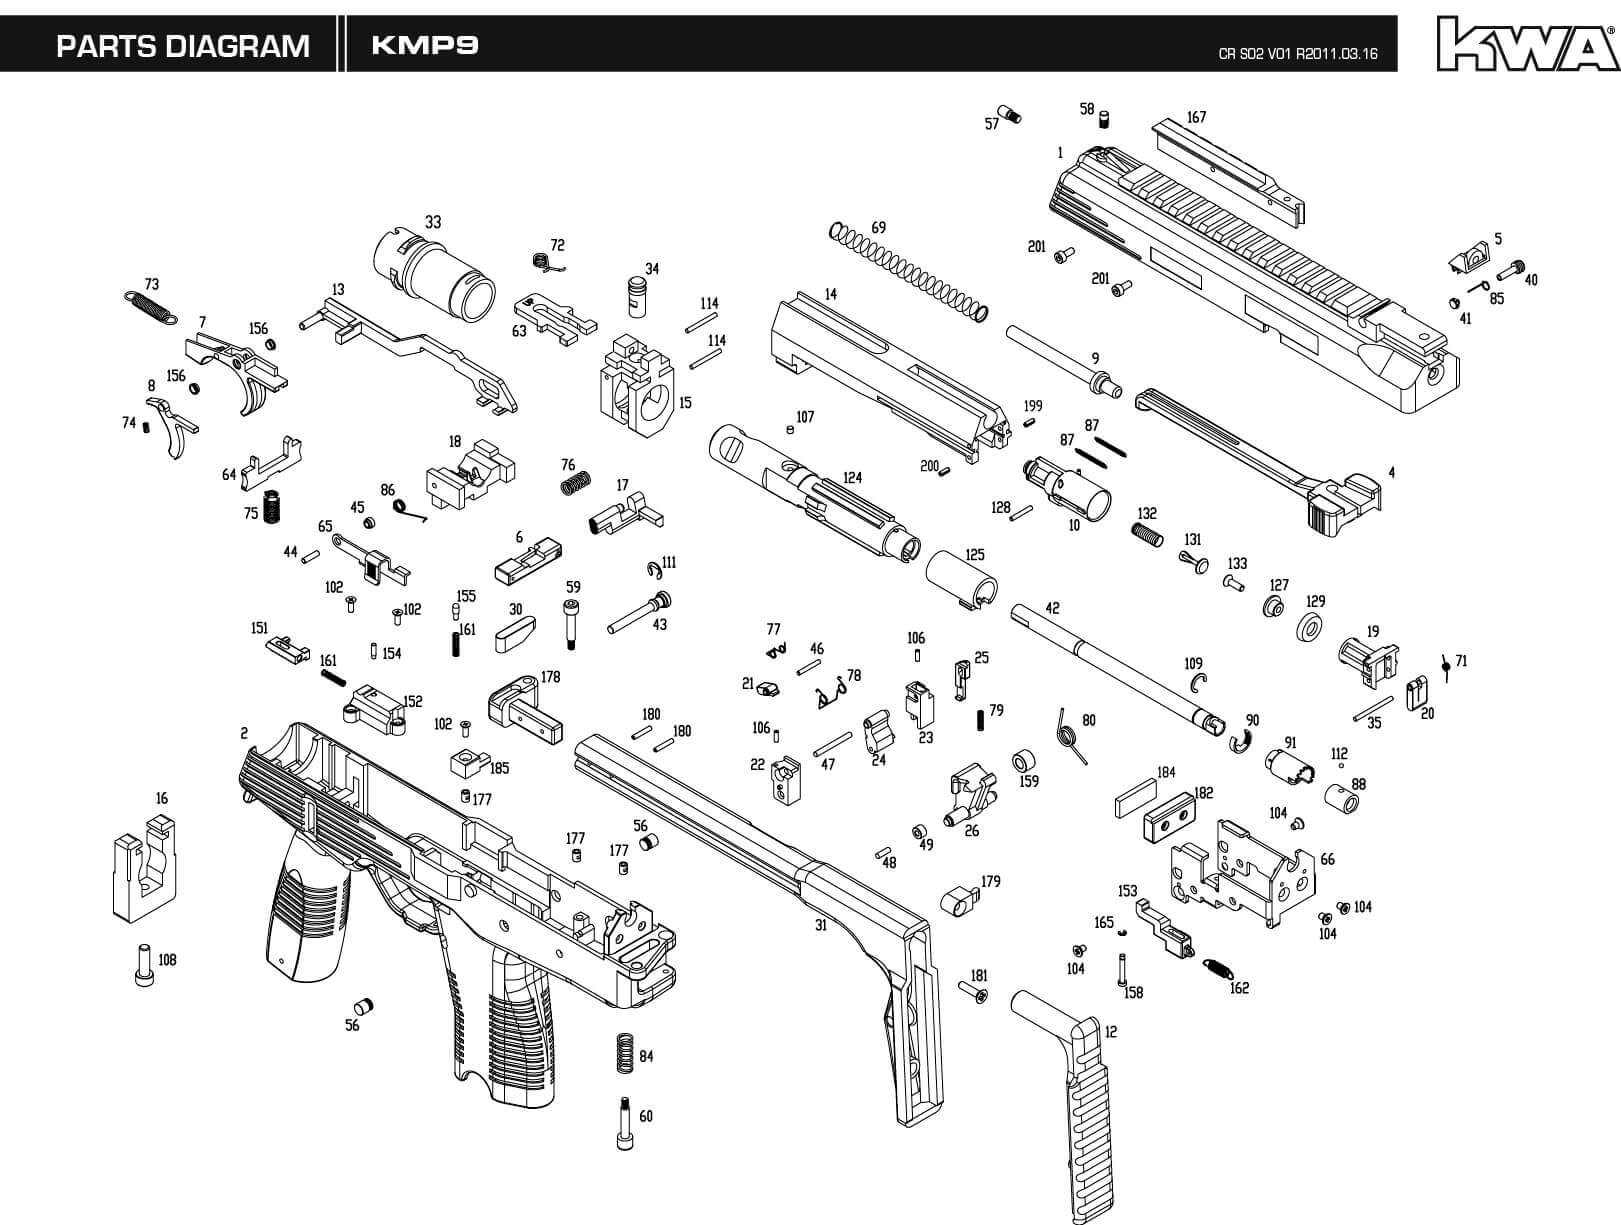 hight resolution of mp 9 parts diagram just wiring diagram downloads kwa airsoft mp 9 parts diagram